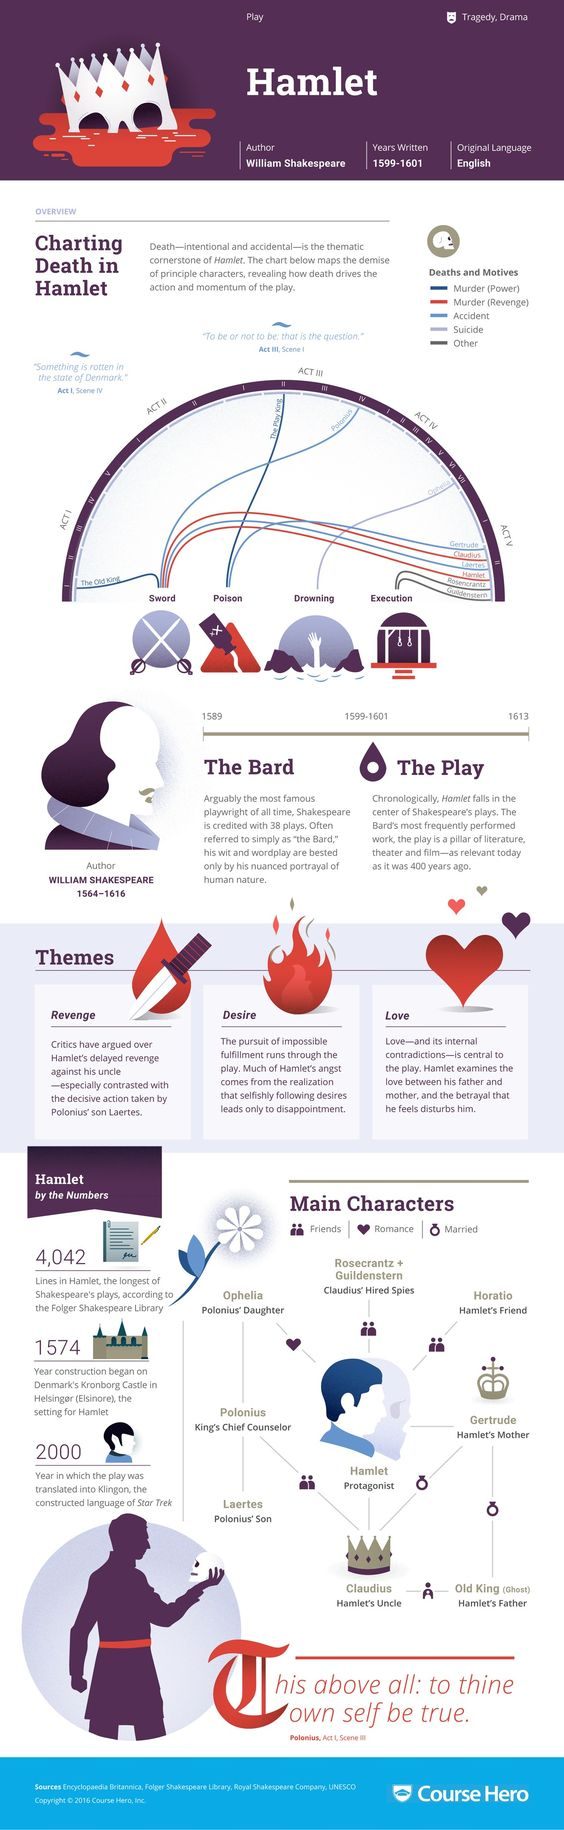 check out this awesome hamlet infographic from course hero check out this awesome hamlet infographic from course